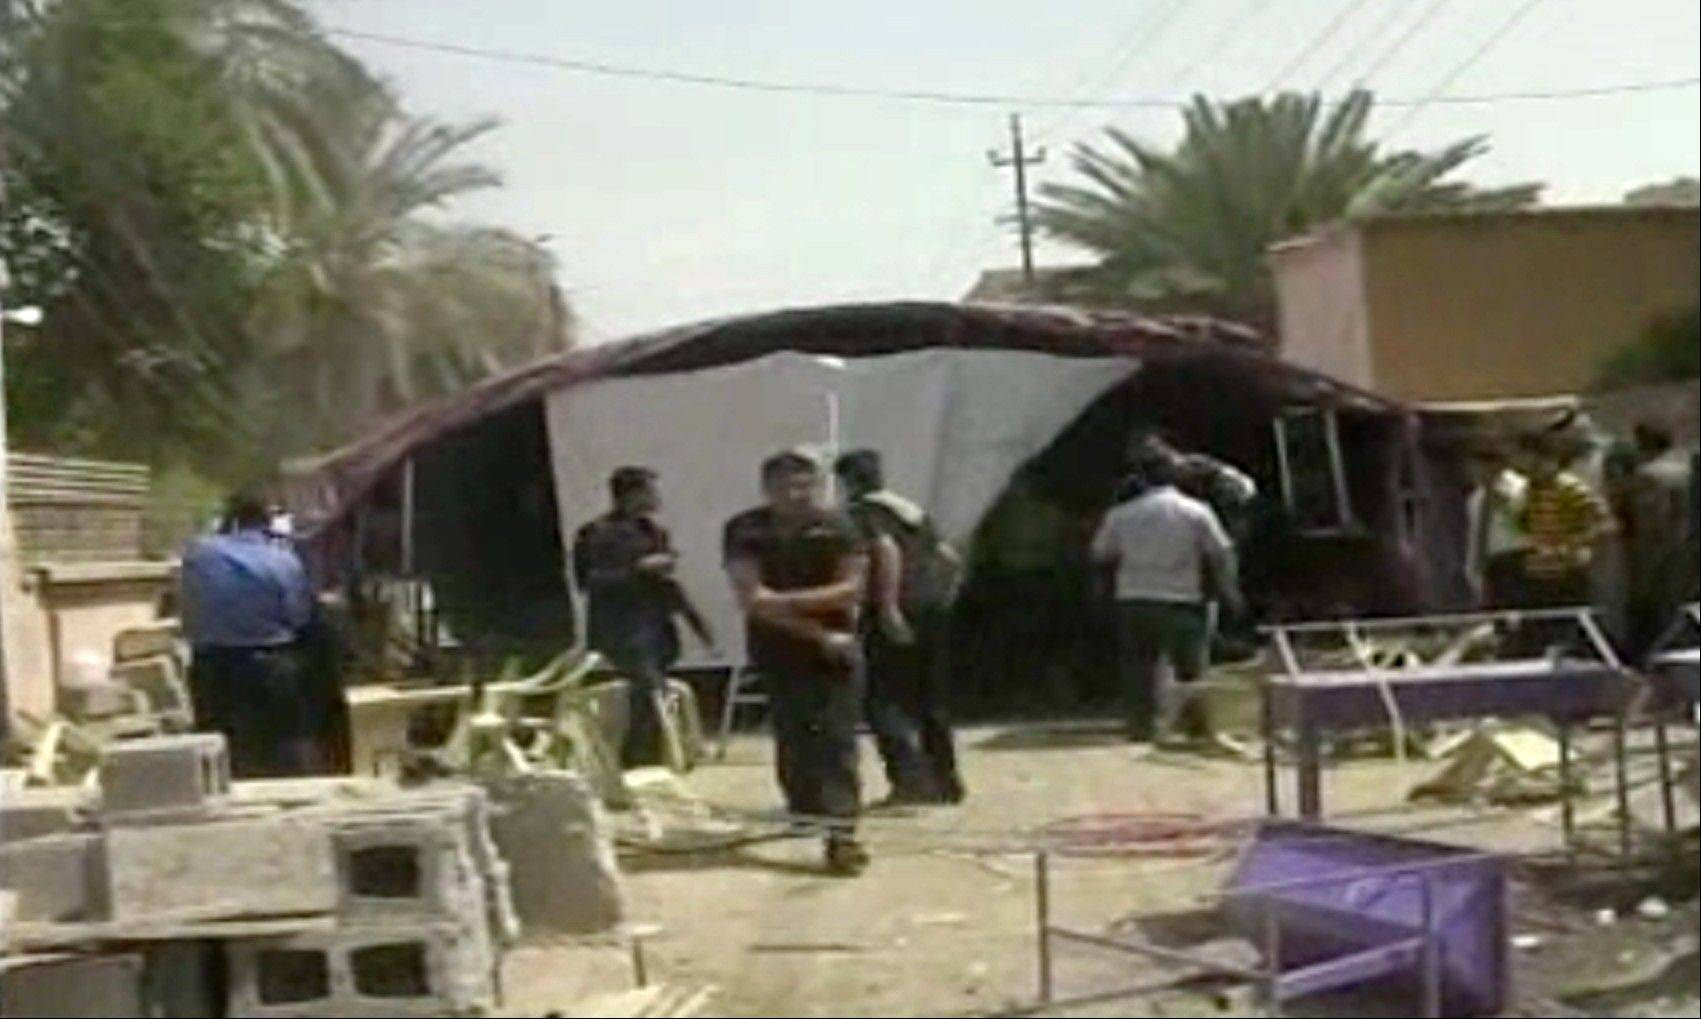 This image from AP video shows the aftermath of a suicide attack in Baqouba, some 35 miles northeast of Baghdad, Iraq, Saturday, April 6, 2013. A suicide bomber blew himself up Saturday at a lunch hosted by a Sunni candidate in Iraq's upcoming regional elections, killing scores of people, officials said. The blast ripped through a hospitality tent pitched next to the house of Muthana al-Jourani, who is running for the provincial council and held the lunch rally for supporters, councilman Sadiq al-Huseini said.